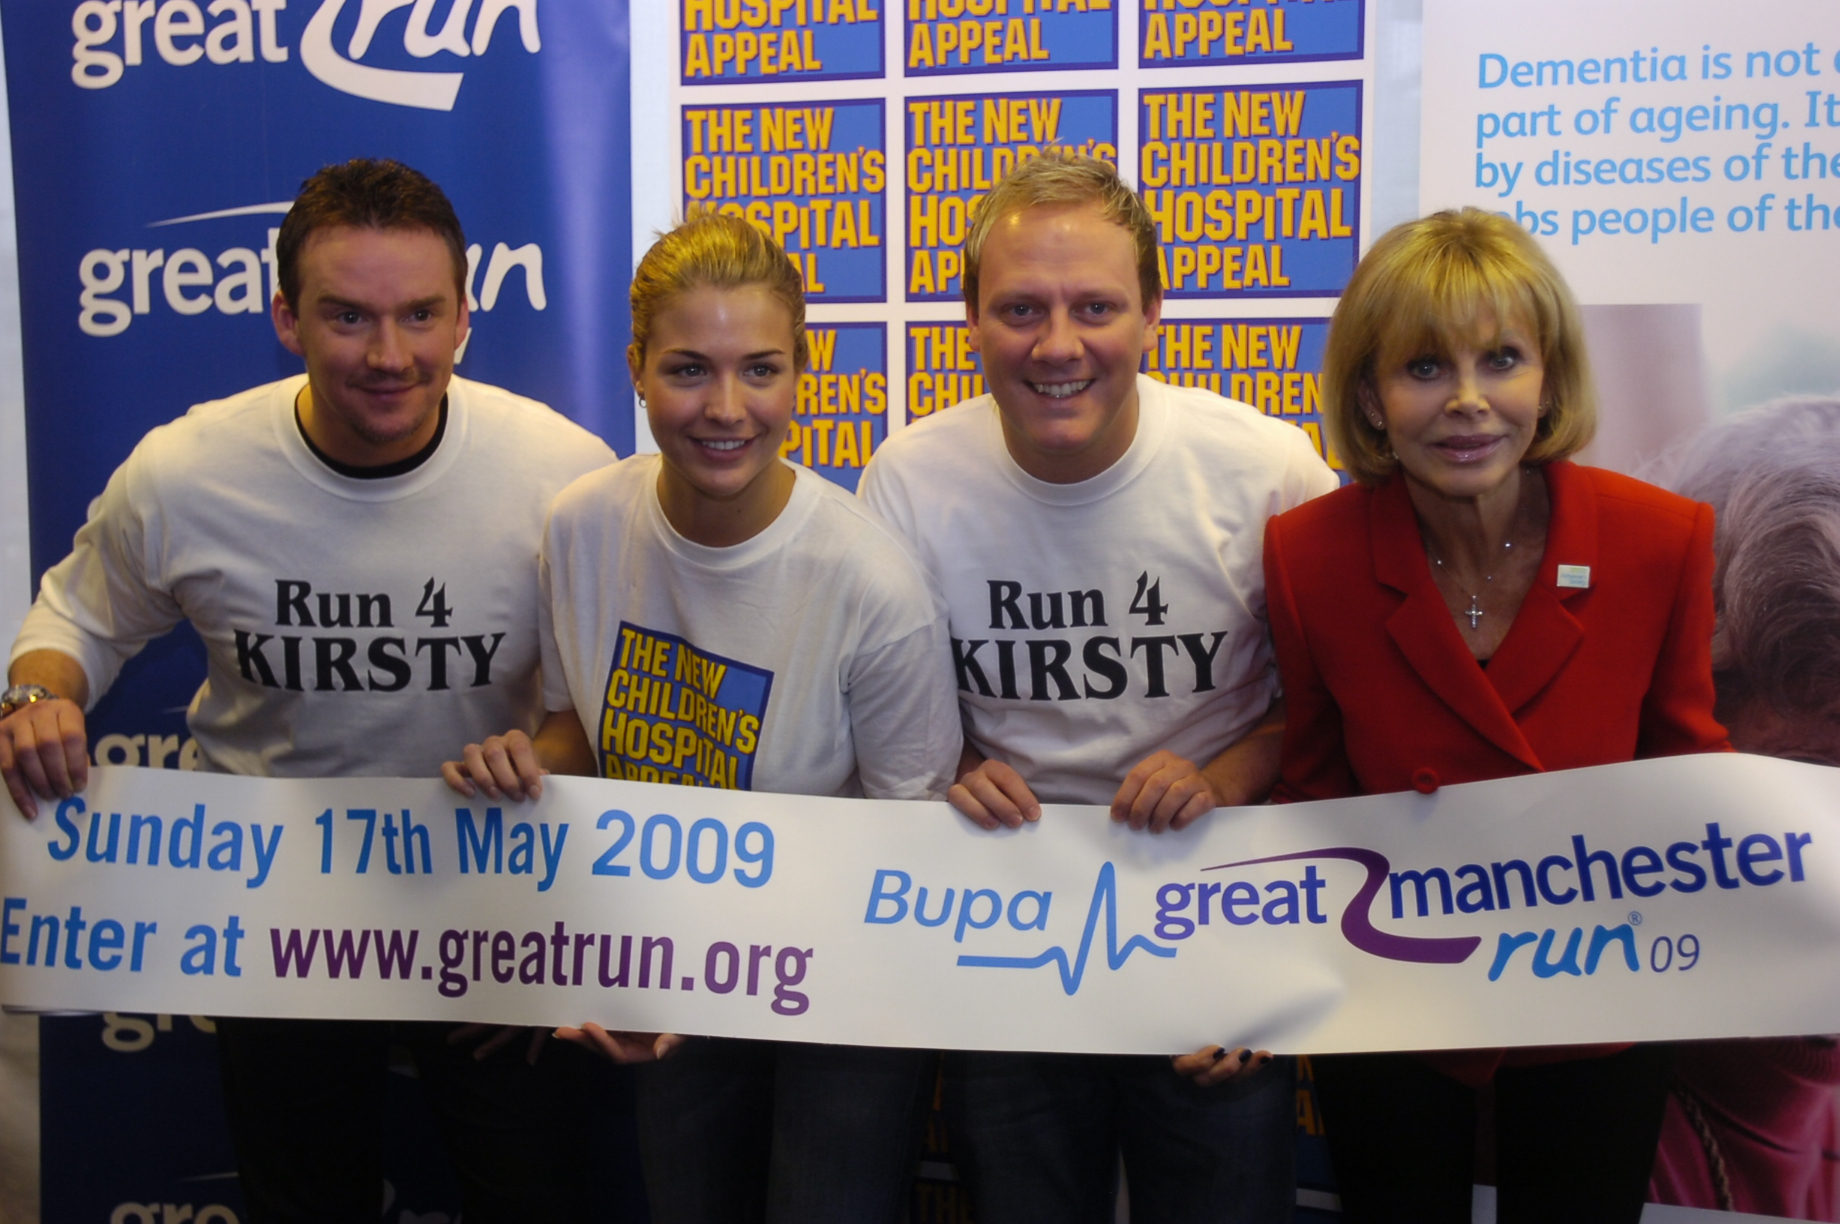 LAUNCH: From the left, Russell Watson, Gemma Atkinson, Anthony Cotton and Britt Ekland help launch the Great Manchester Run